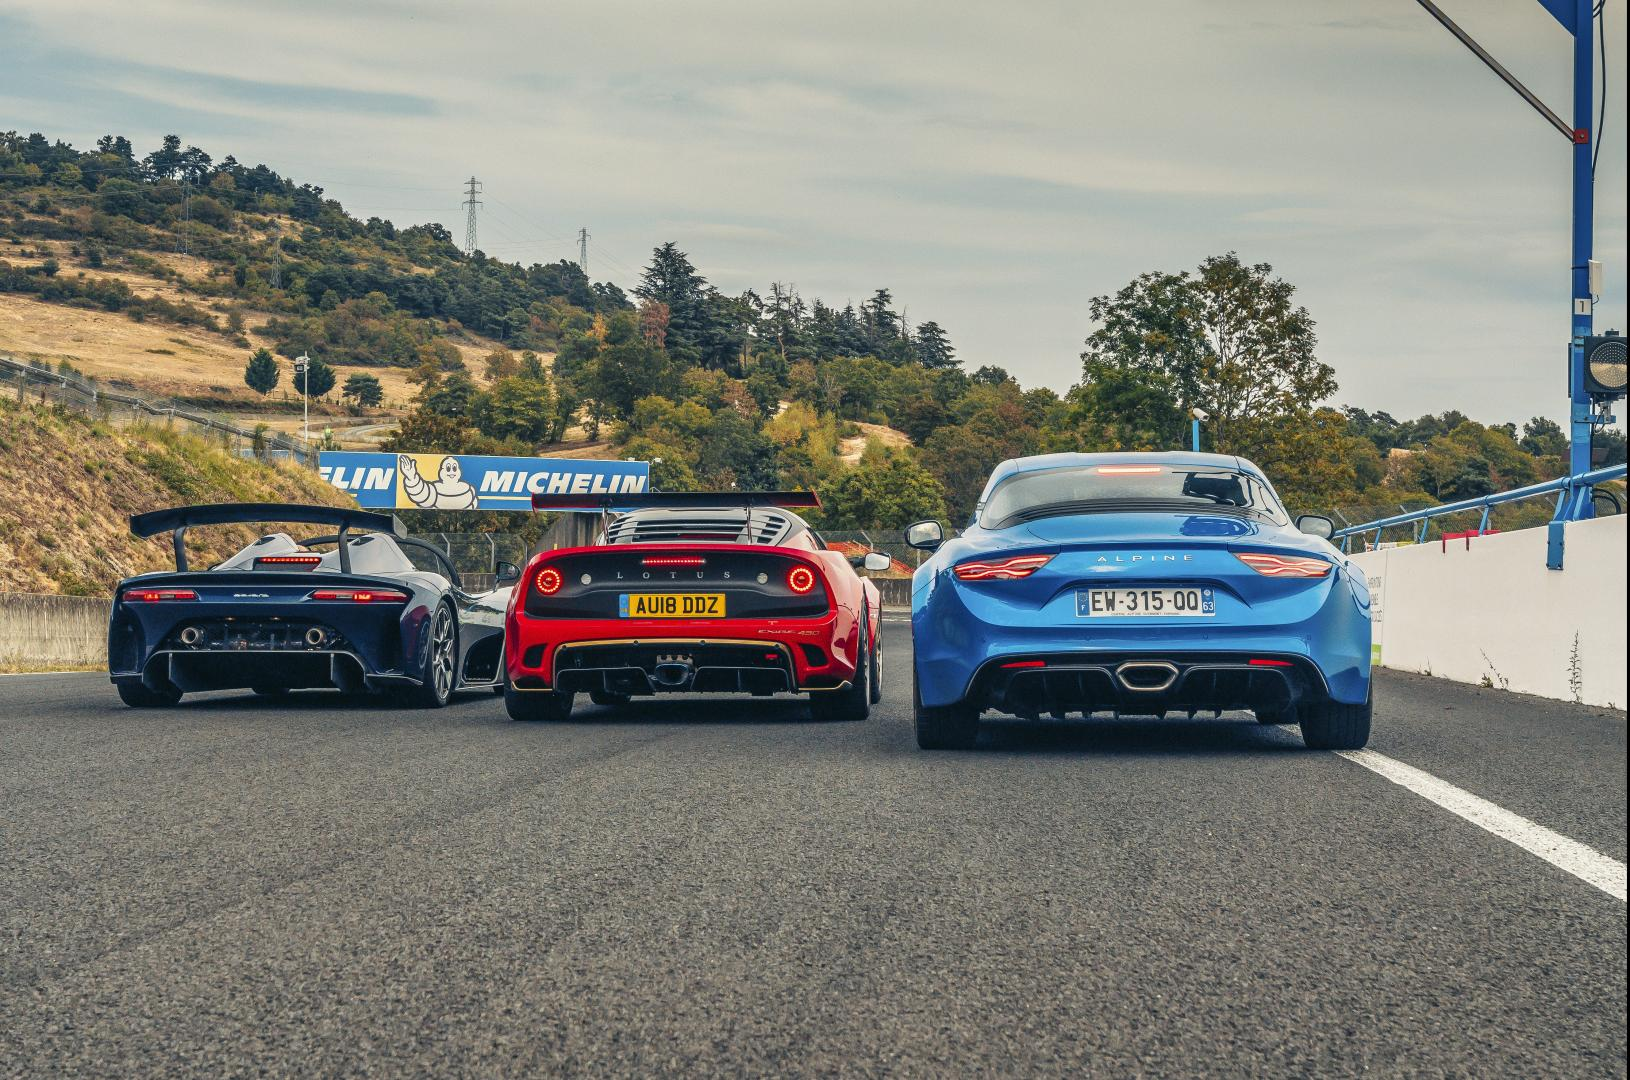 Dallara Stradale vs Alpine A110 vs Lotus Exige Cup 430